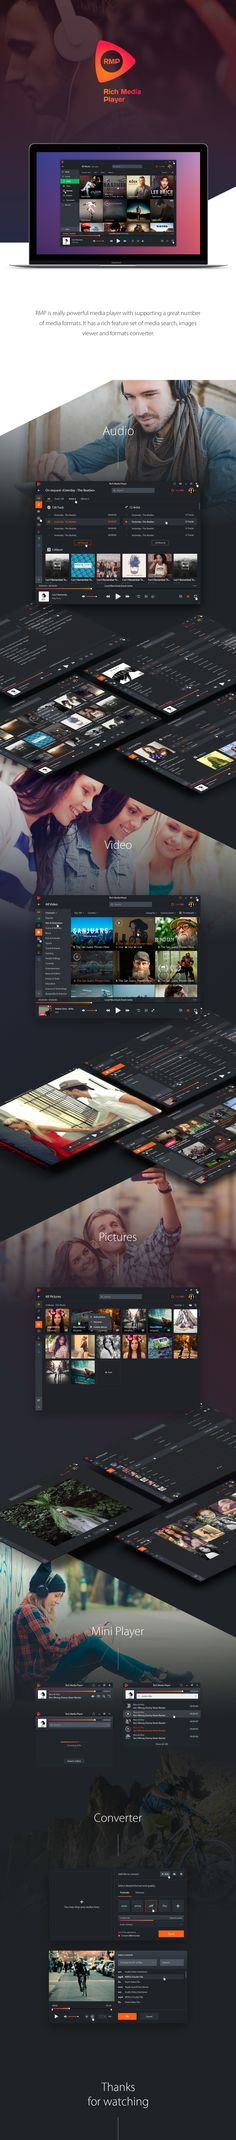 Rich Media Player on Behance